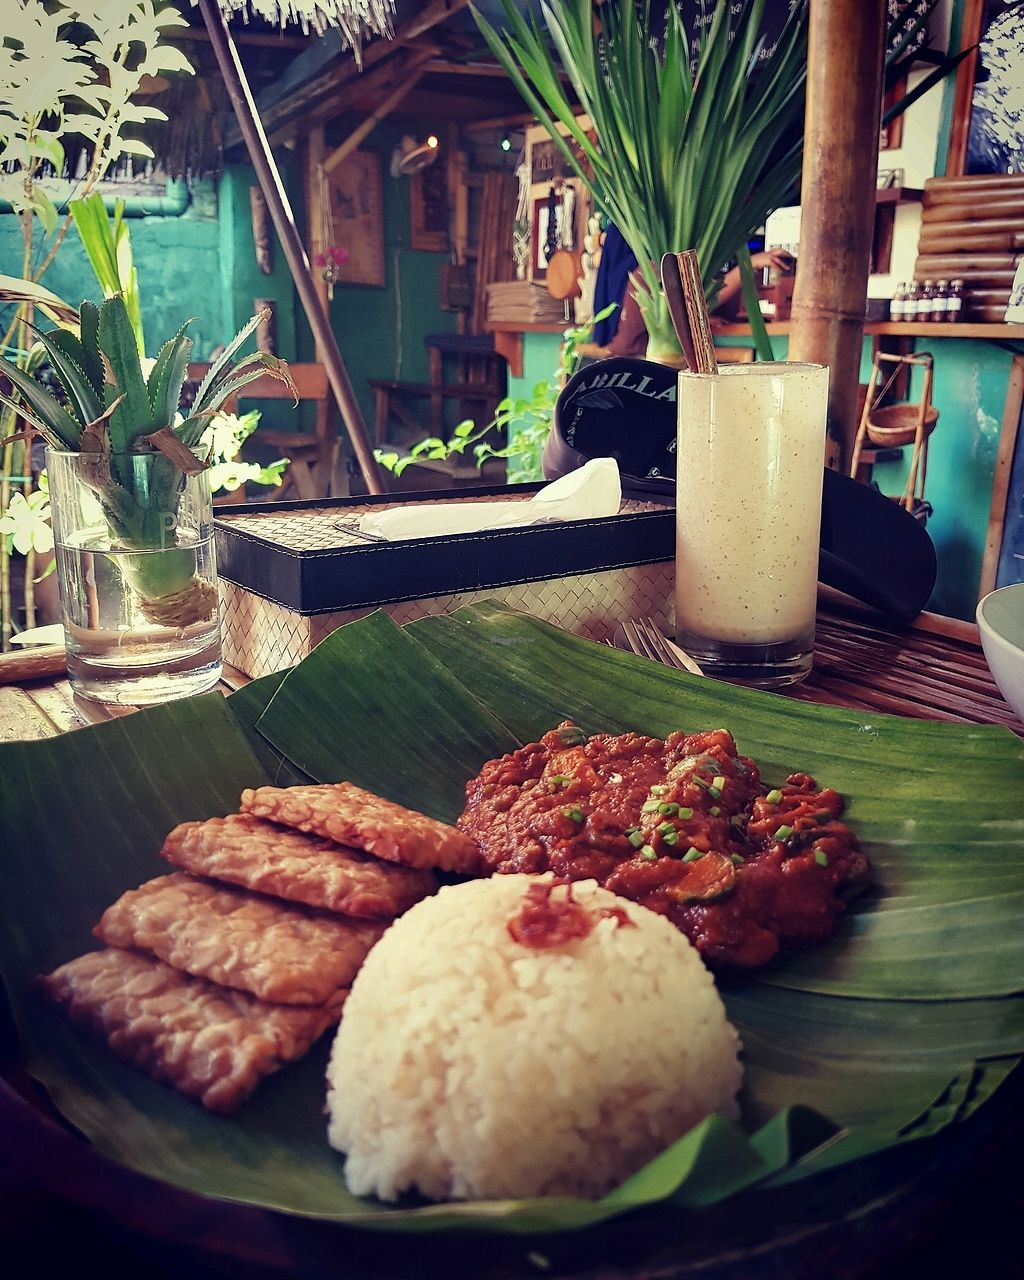 """Photo of Pituq Cafe  by <a href=""""/members/profile/MishyCow"""">MishyCow</a> <br/>Tempe Dish IDR65, 000 <br/> December 10, 2017  - <a href='/contact/abuse/image/65540/334202'>Report</a>"""